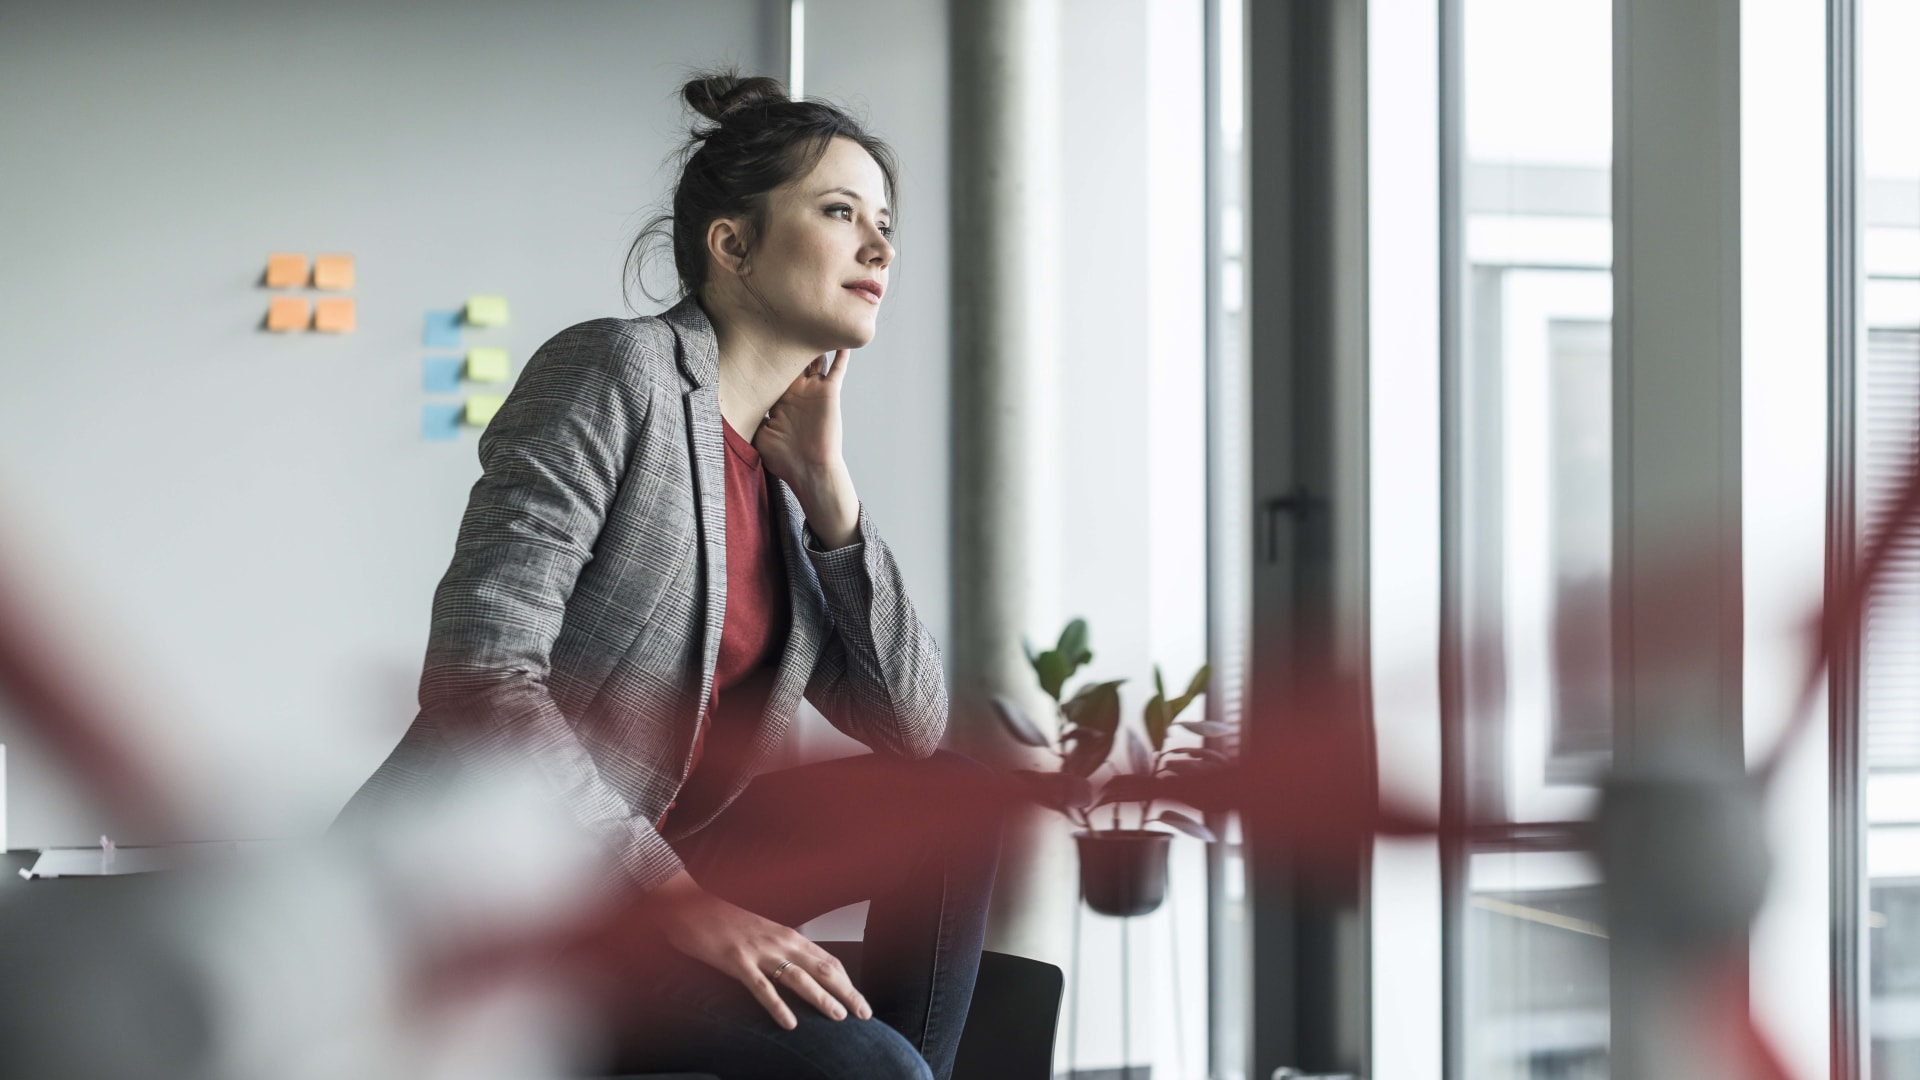 4 Questions to Help You Reimagine Your Company in the Post-Pandemic World